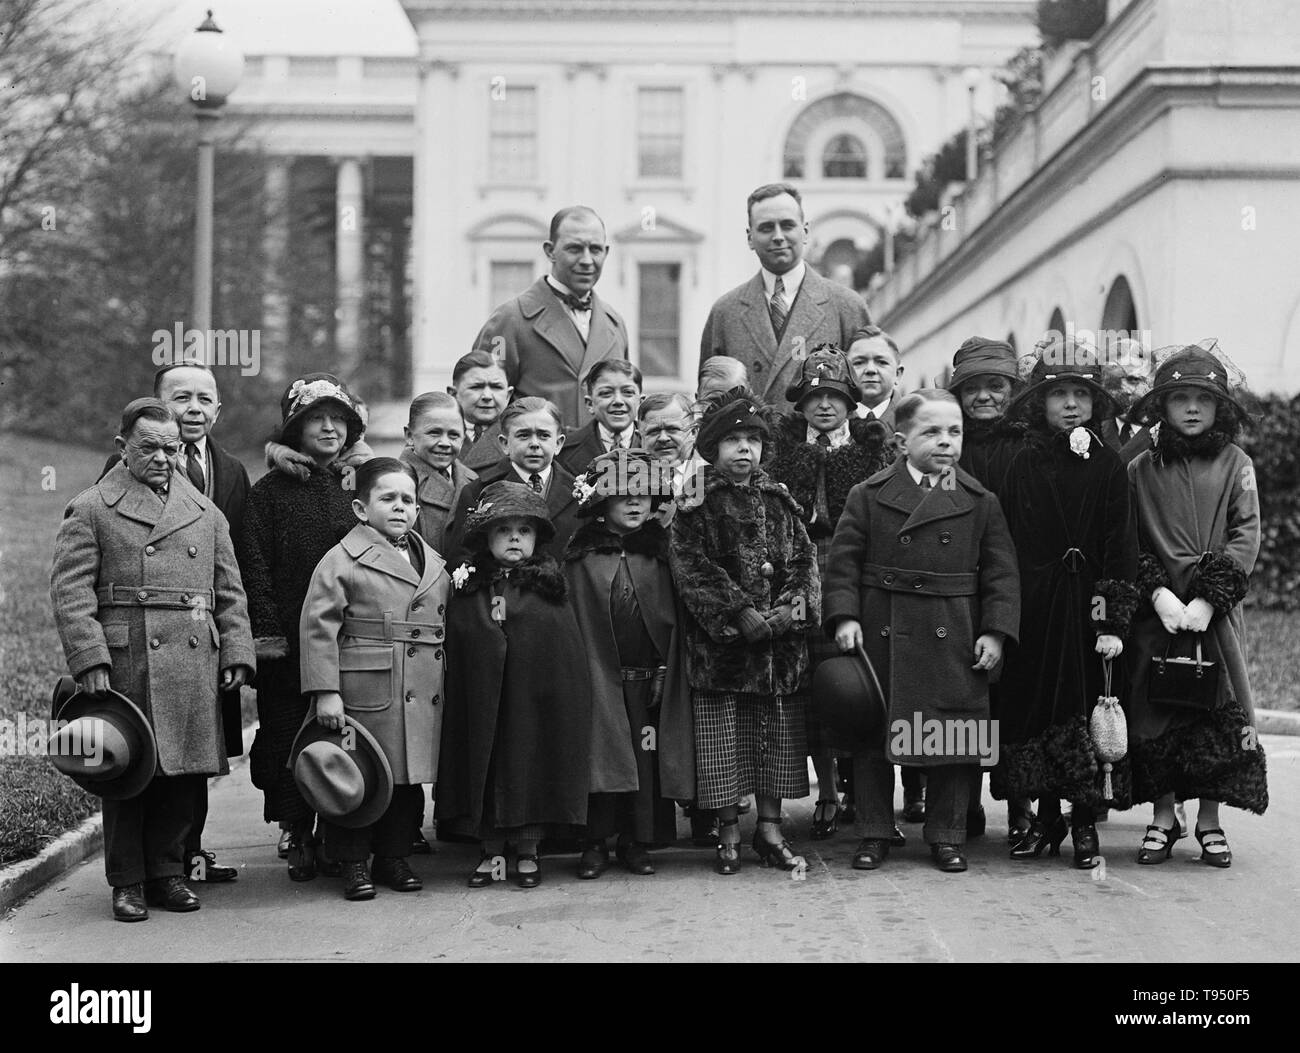 Entitled: 'The entire company of the tiny men and women who compose the famous singer midgets were received by President Coolidge. Roland Robbins, manager of B.F. Keith's Theatre accompanied these little people to the White House. They have appeared in almost every country in the world.' Singer's Midgets were a popular vaudeville group in the first half of the 20th century. Leopold von Singer (May 3, 1877 - March 5, 1951) formed Singer's Midgets in 1912-13, and built the Liliputstadt, a 'midget city' at the 'Venice in Vienna' amusement park, where they performed. The Liliputstadt was a major s - Stock Image